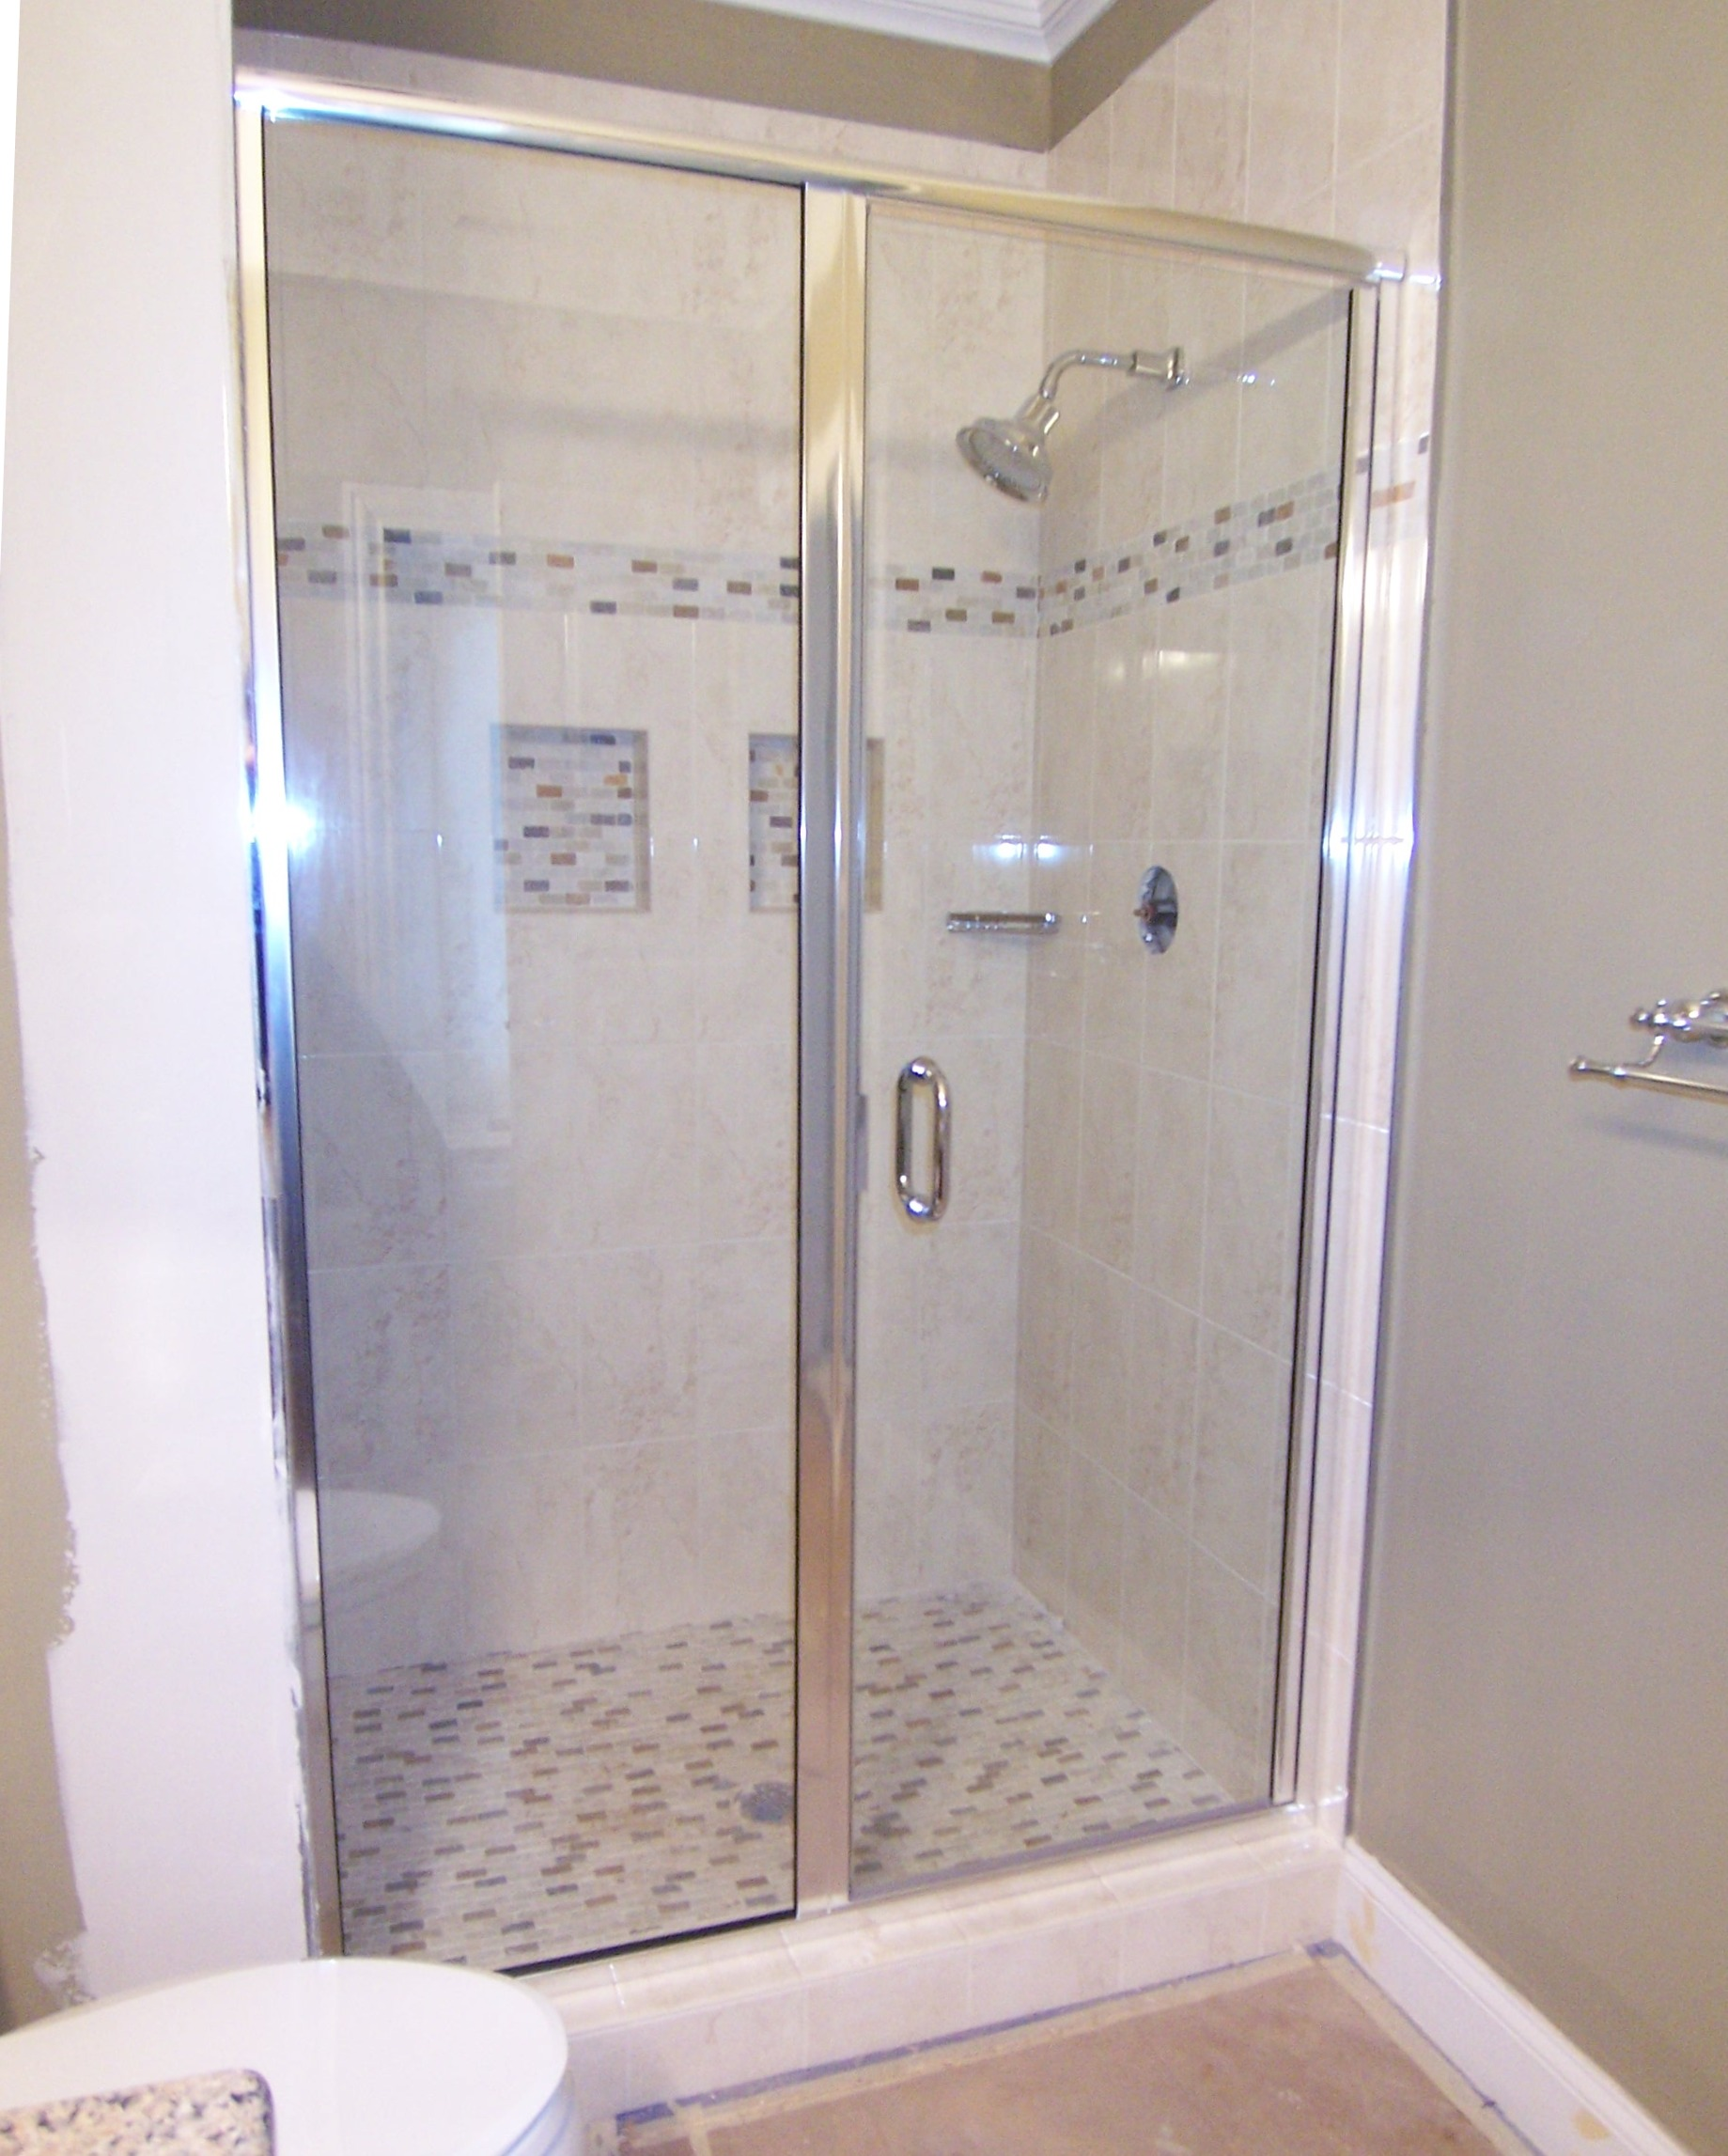 completed blog kerabath hardware shower door we semi few com week doors with chrome heres last frameless